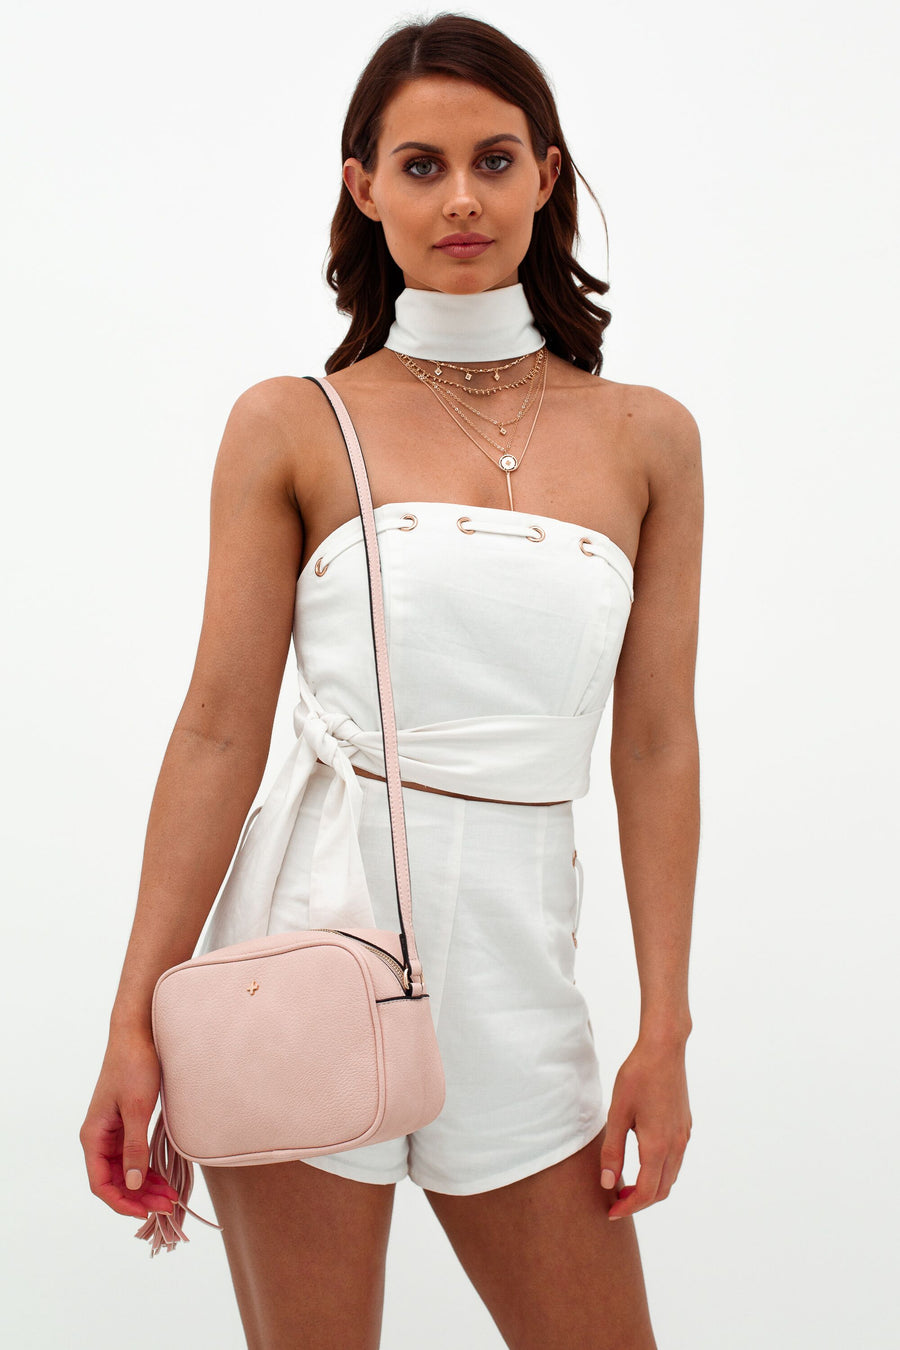 Gracie Bag in Pastel Pink for $69.95